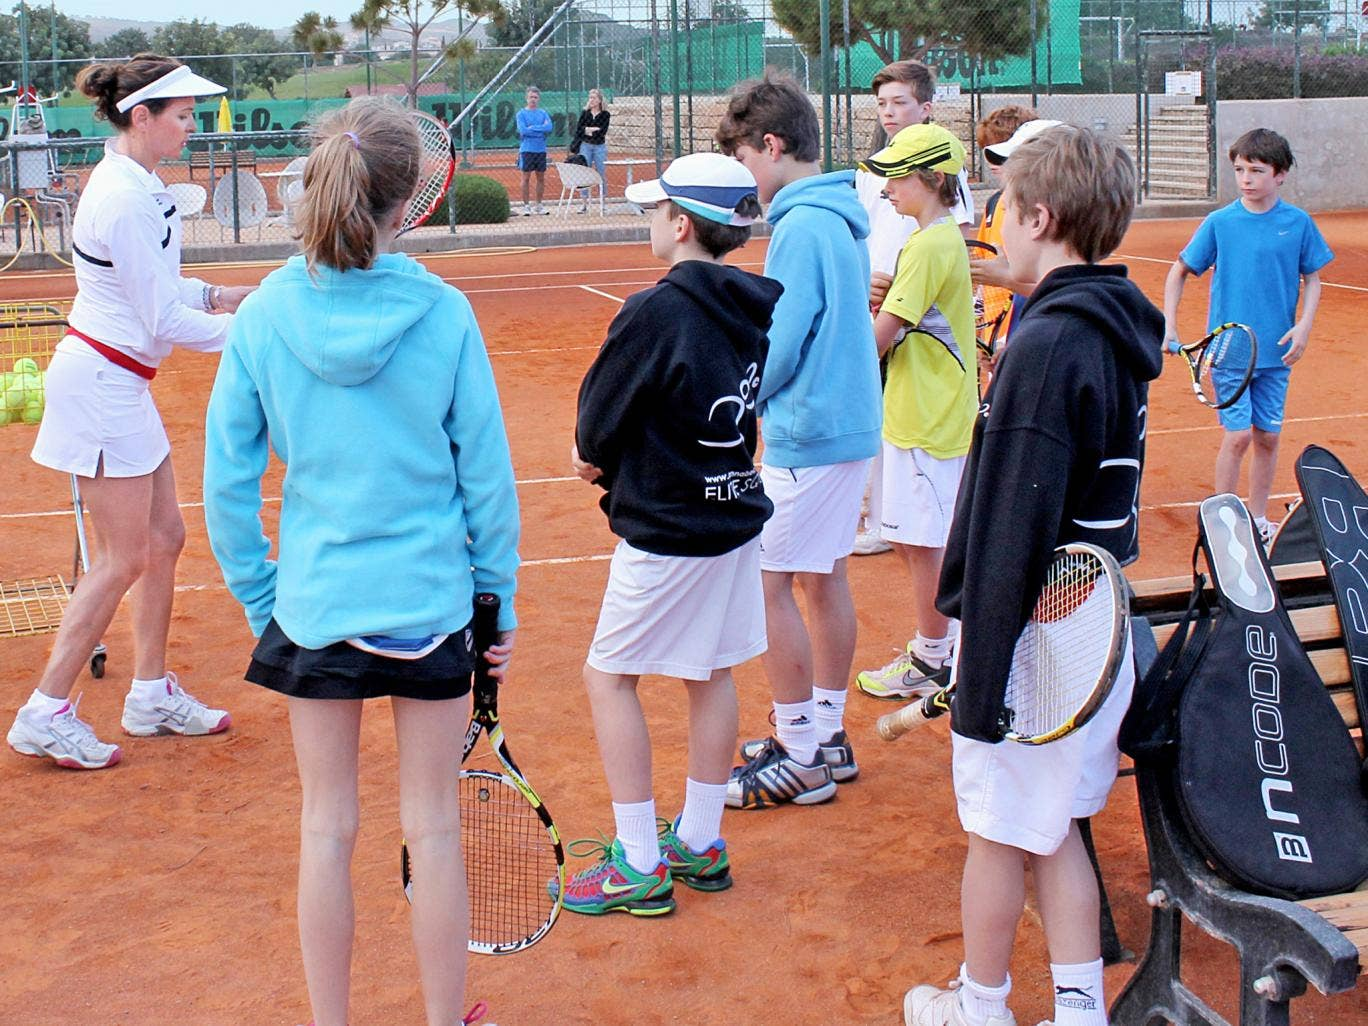 Smash hit: in training at the Annabel Croft Academy in Cyprus